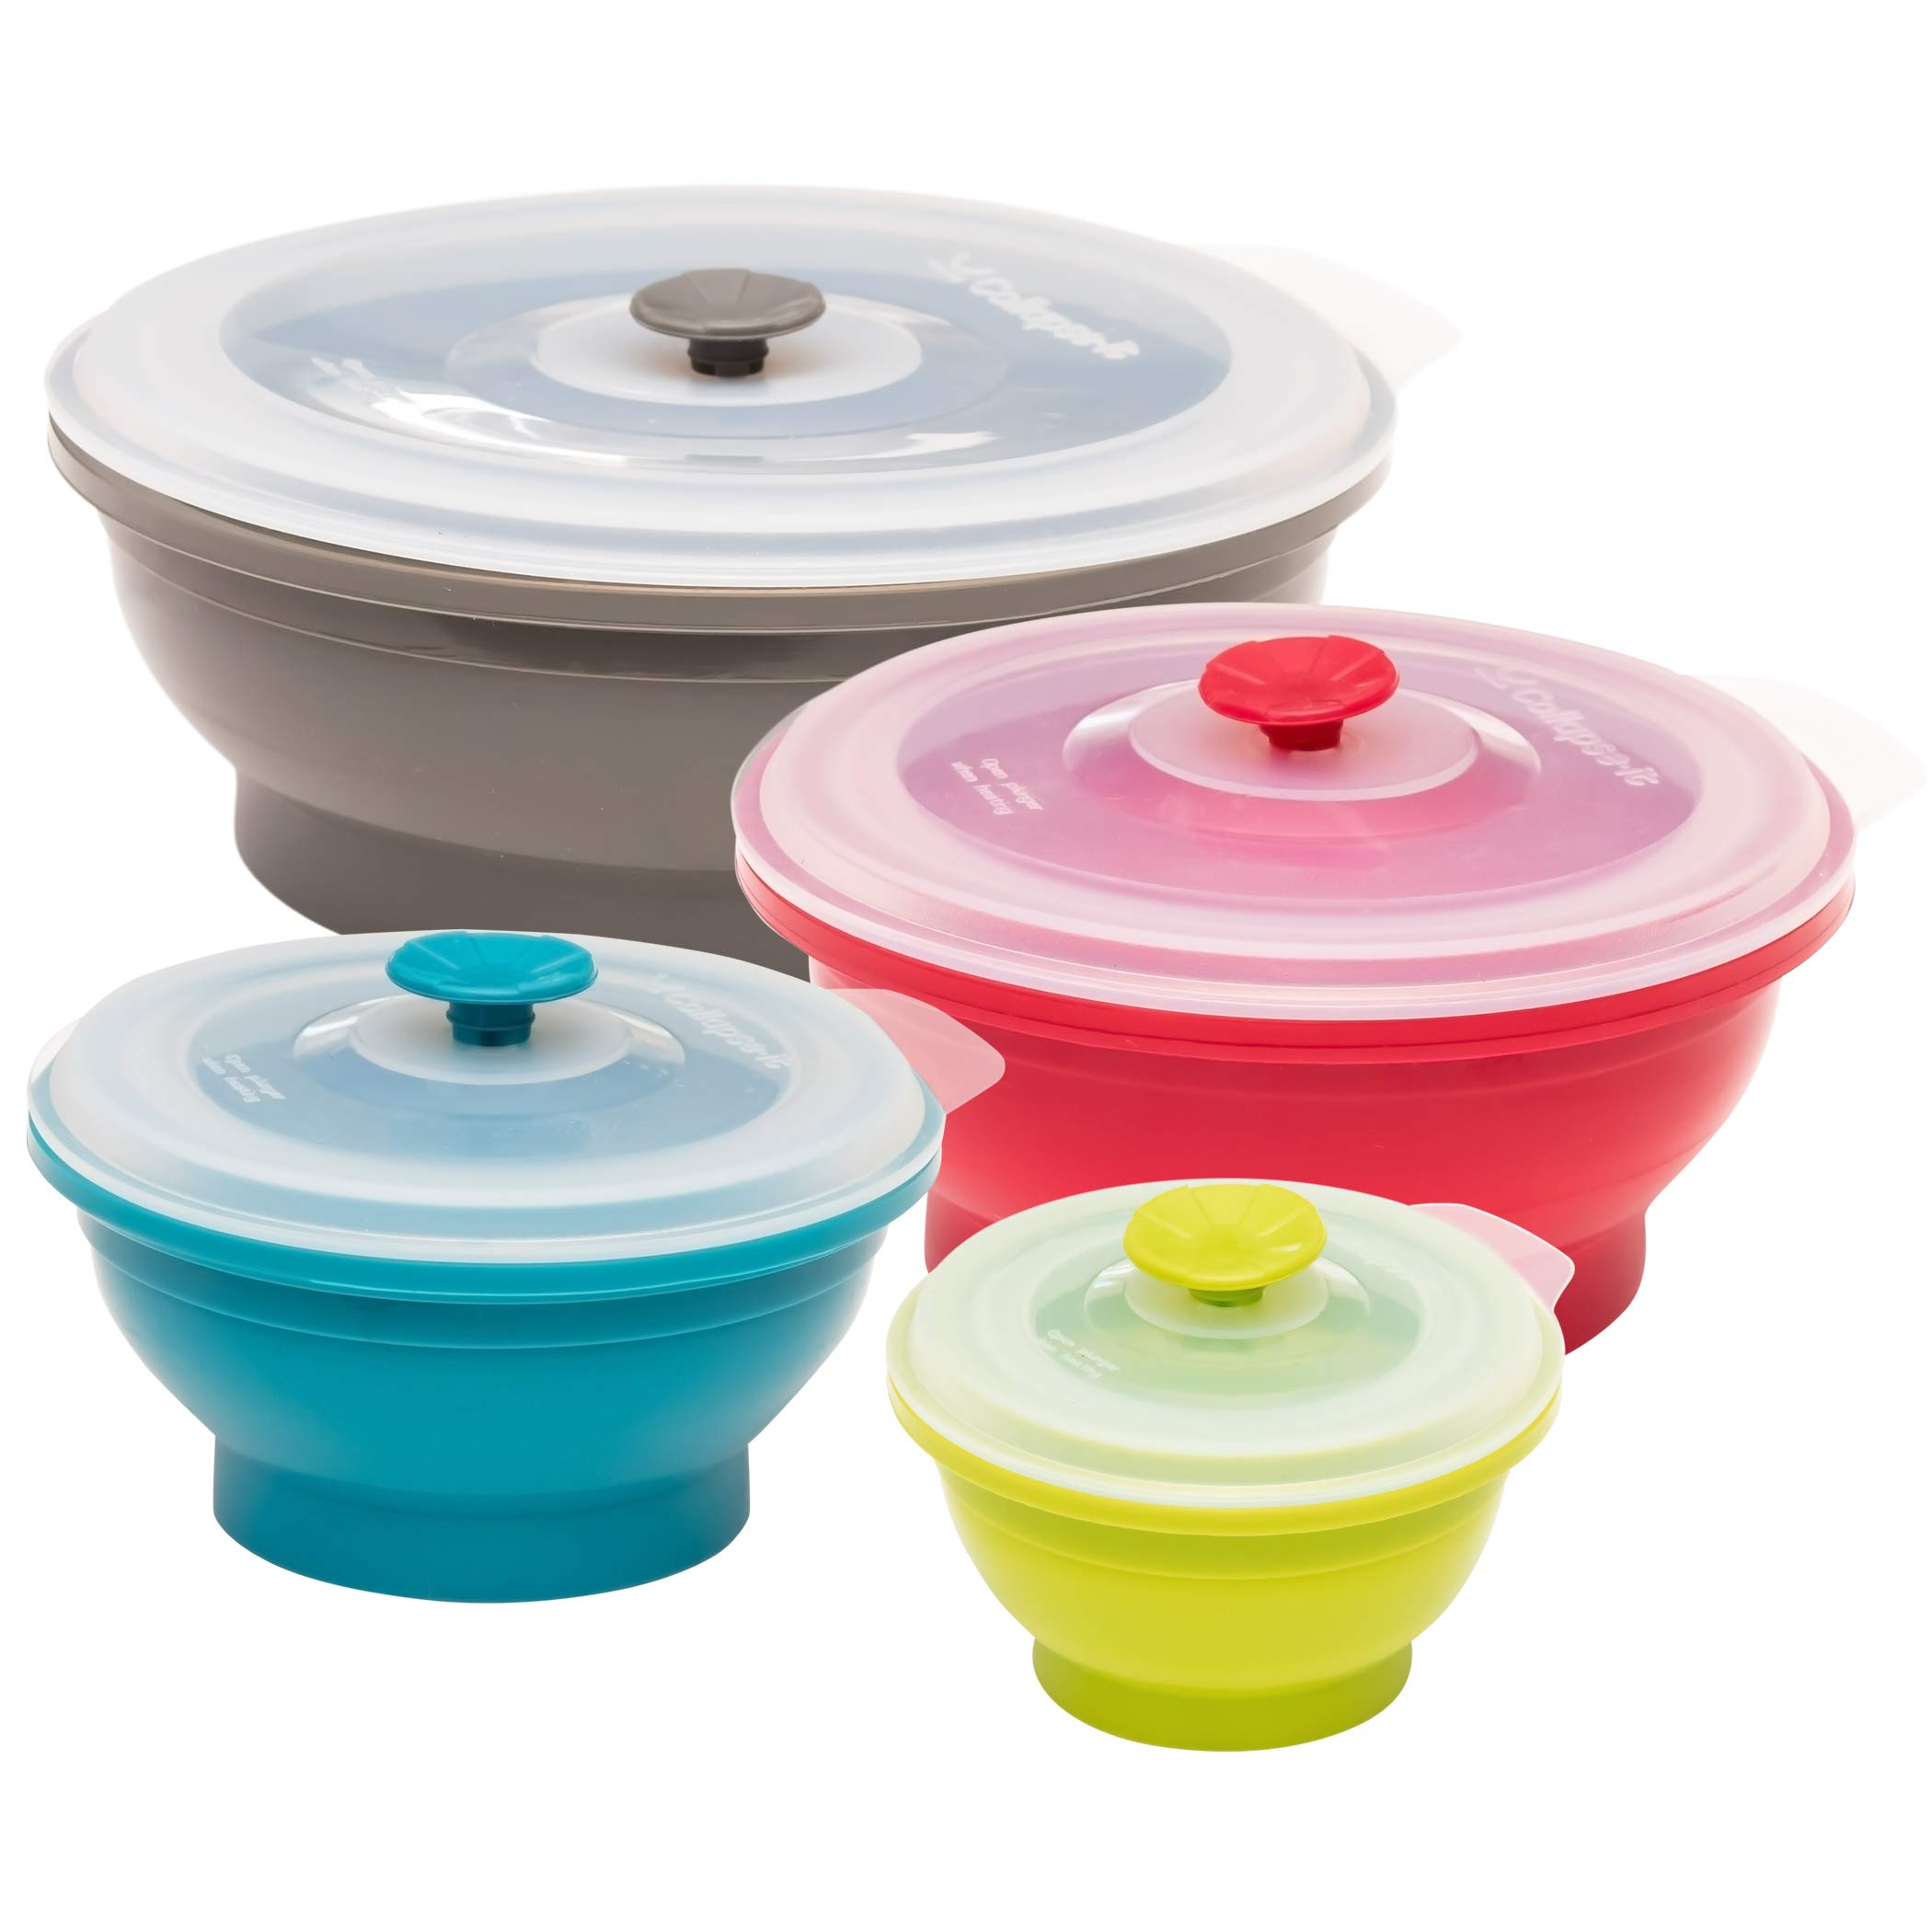 Collapse Silicone Food Storage Containers